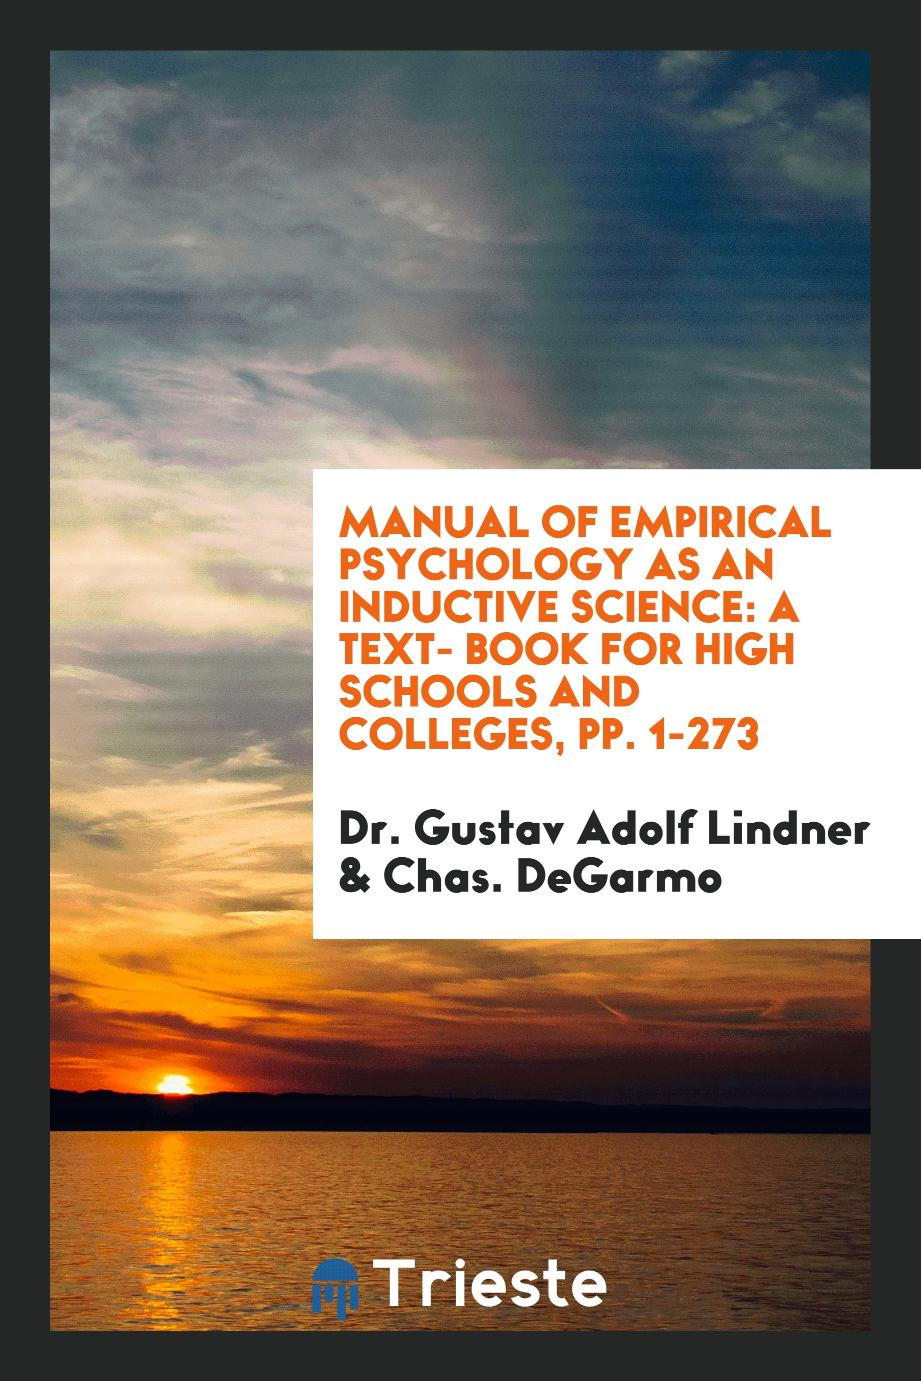 Manual of Empirical Psychology as an Inductive Science: A Text- Book for High Schools and Colleges, pp. 1-273